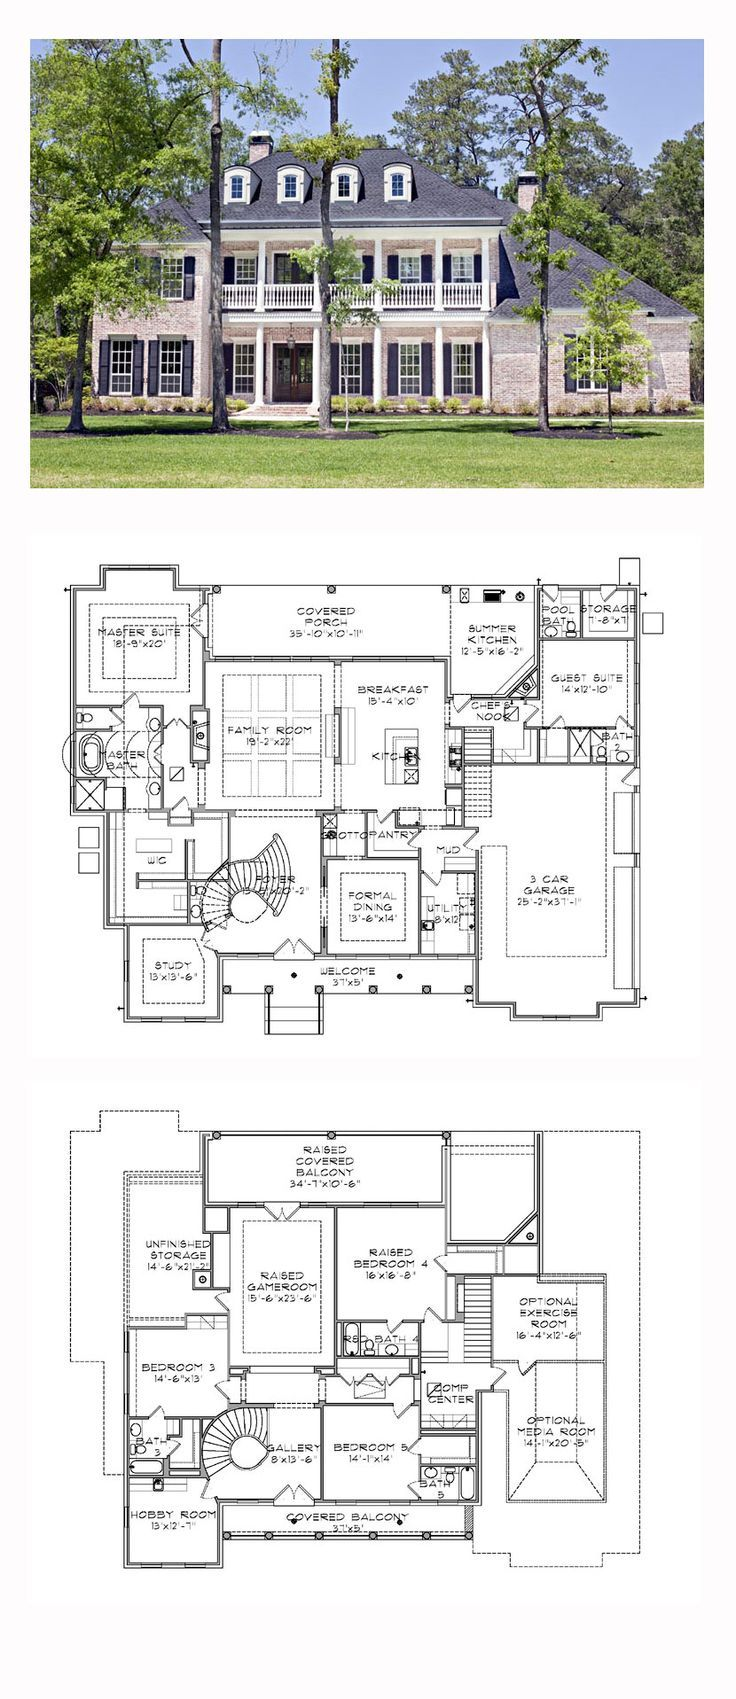 plantation house plan 77818 - Design Dream Homes